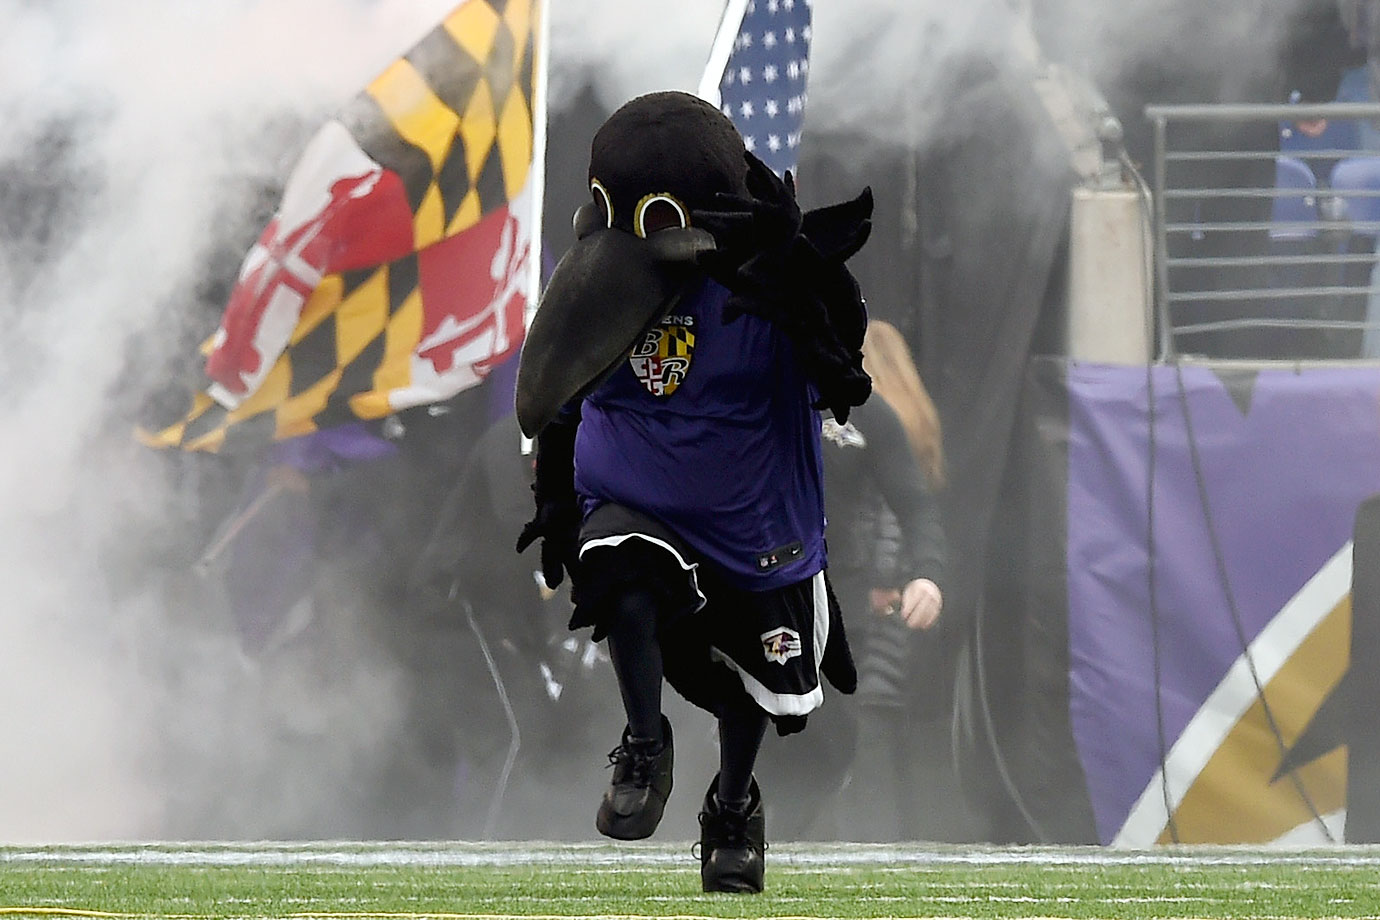 What is the baltimore ravens mascot name - You Ever Get The Feeling A City Is Overcompensating For Something When It Continually Reminds You